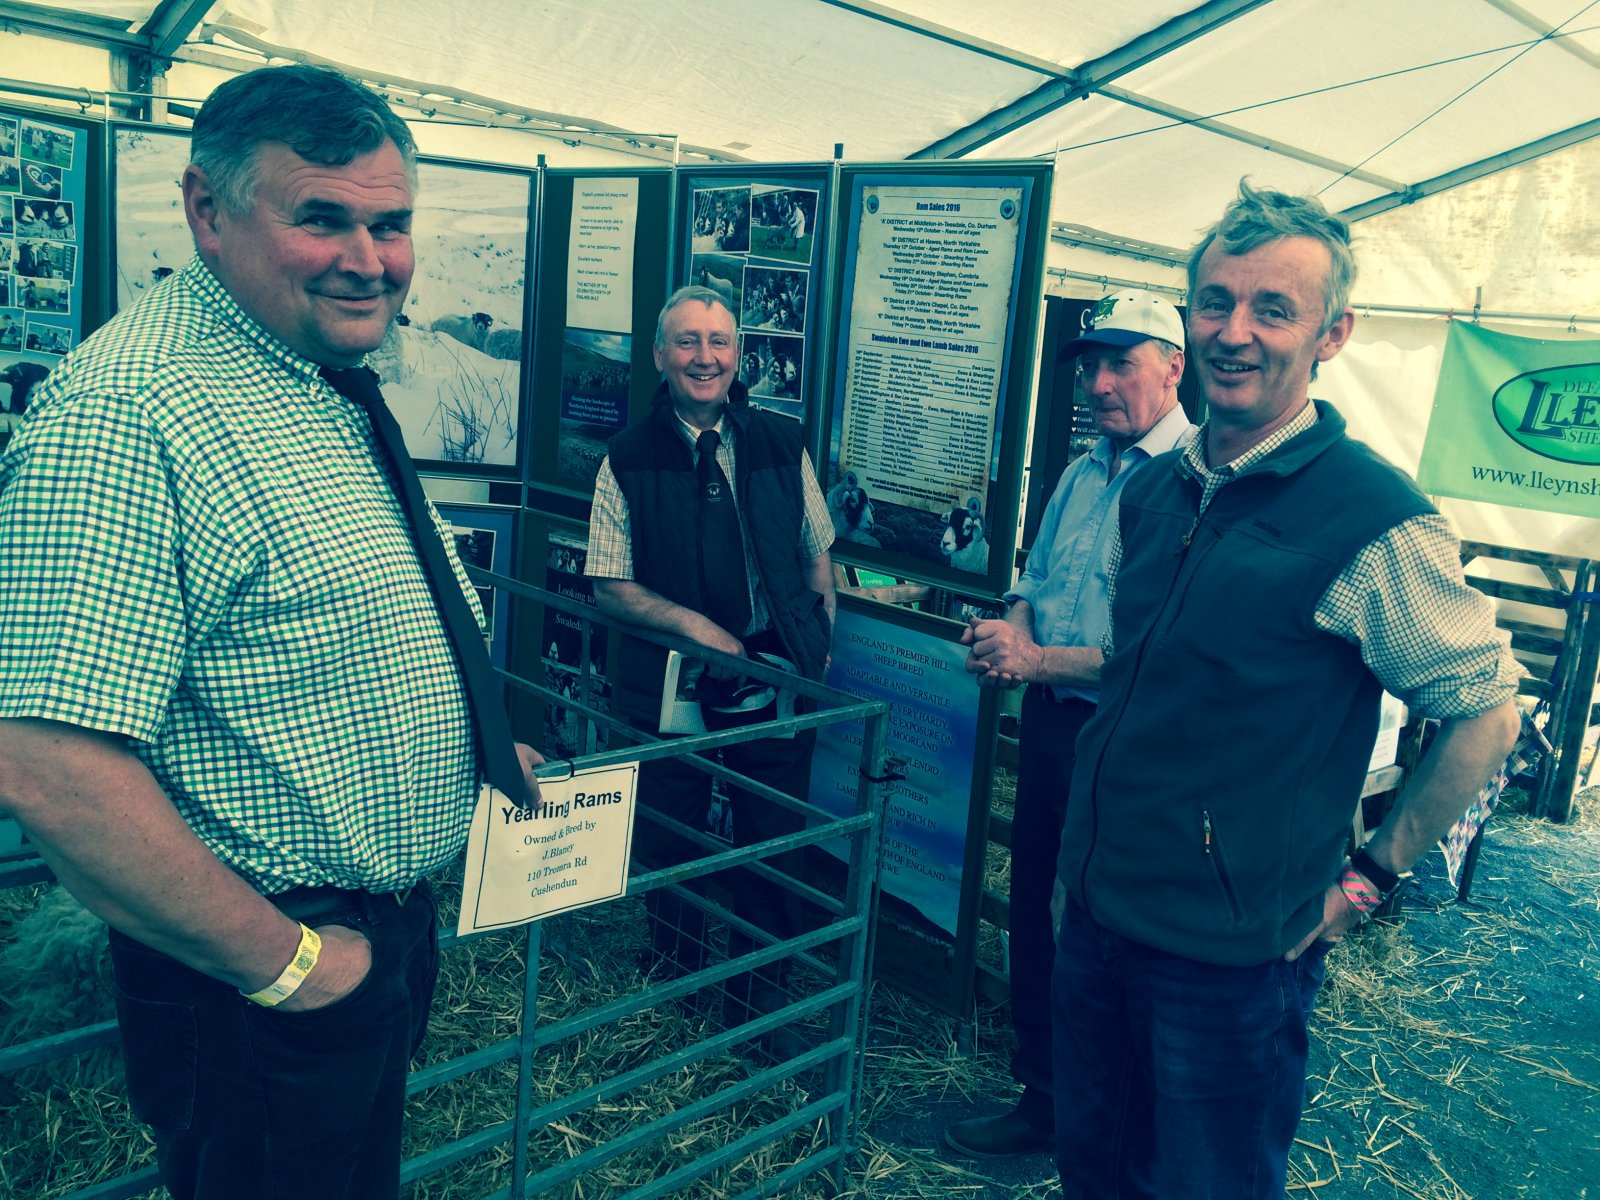 The NSA Sheep Centre provided a focus on the sheep sector for people to do business in a friendly environment